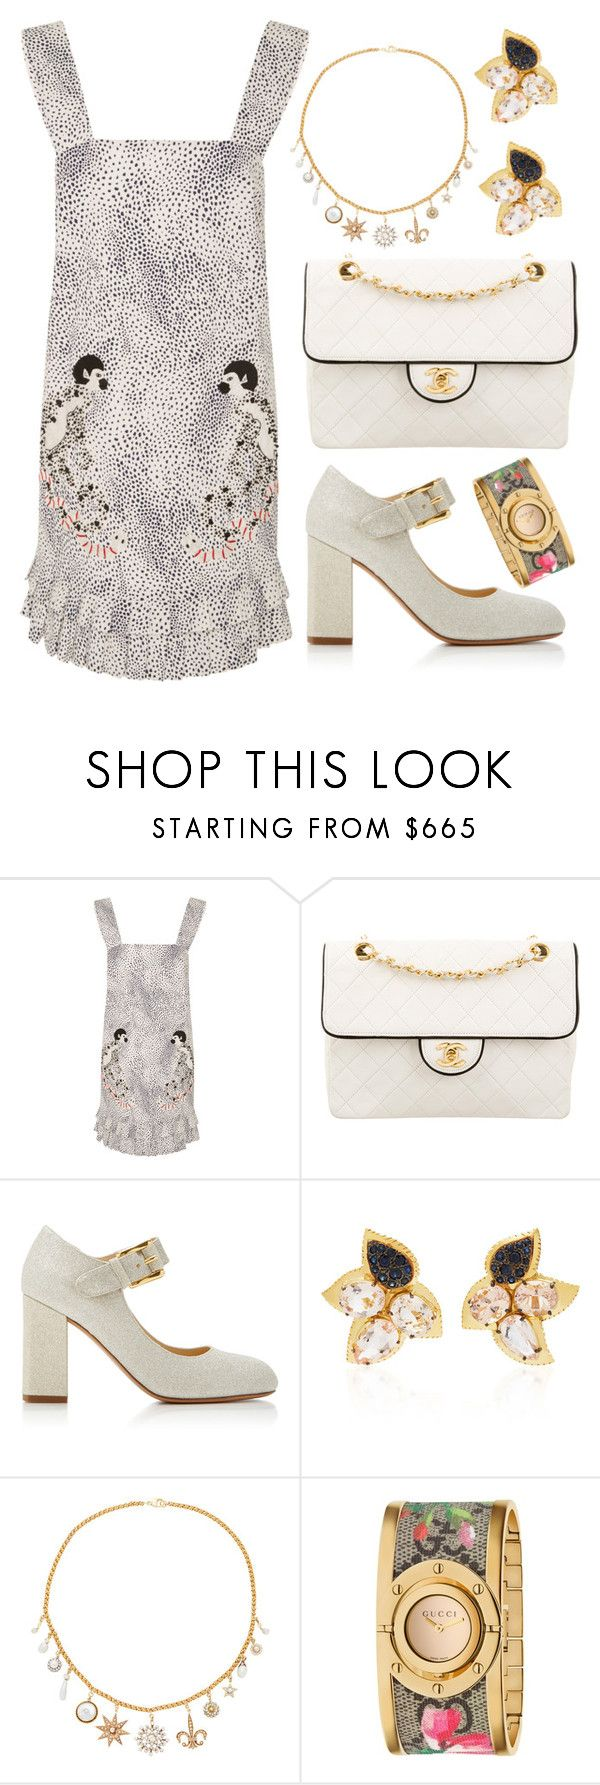 """""""3439"""" by lexi96z ❤ liked on Polyvore featuring Leal Daccarett, Chanel, CO, Carol Kauffmann, Renee Lewis and Gucci"""